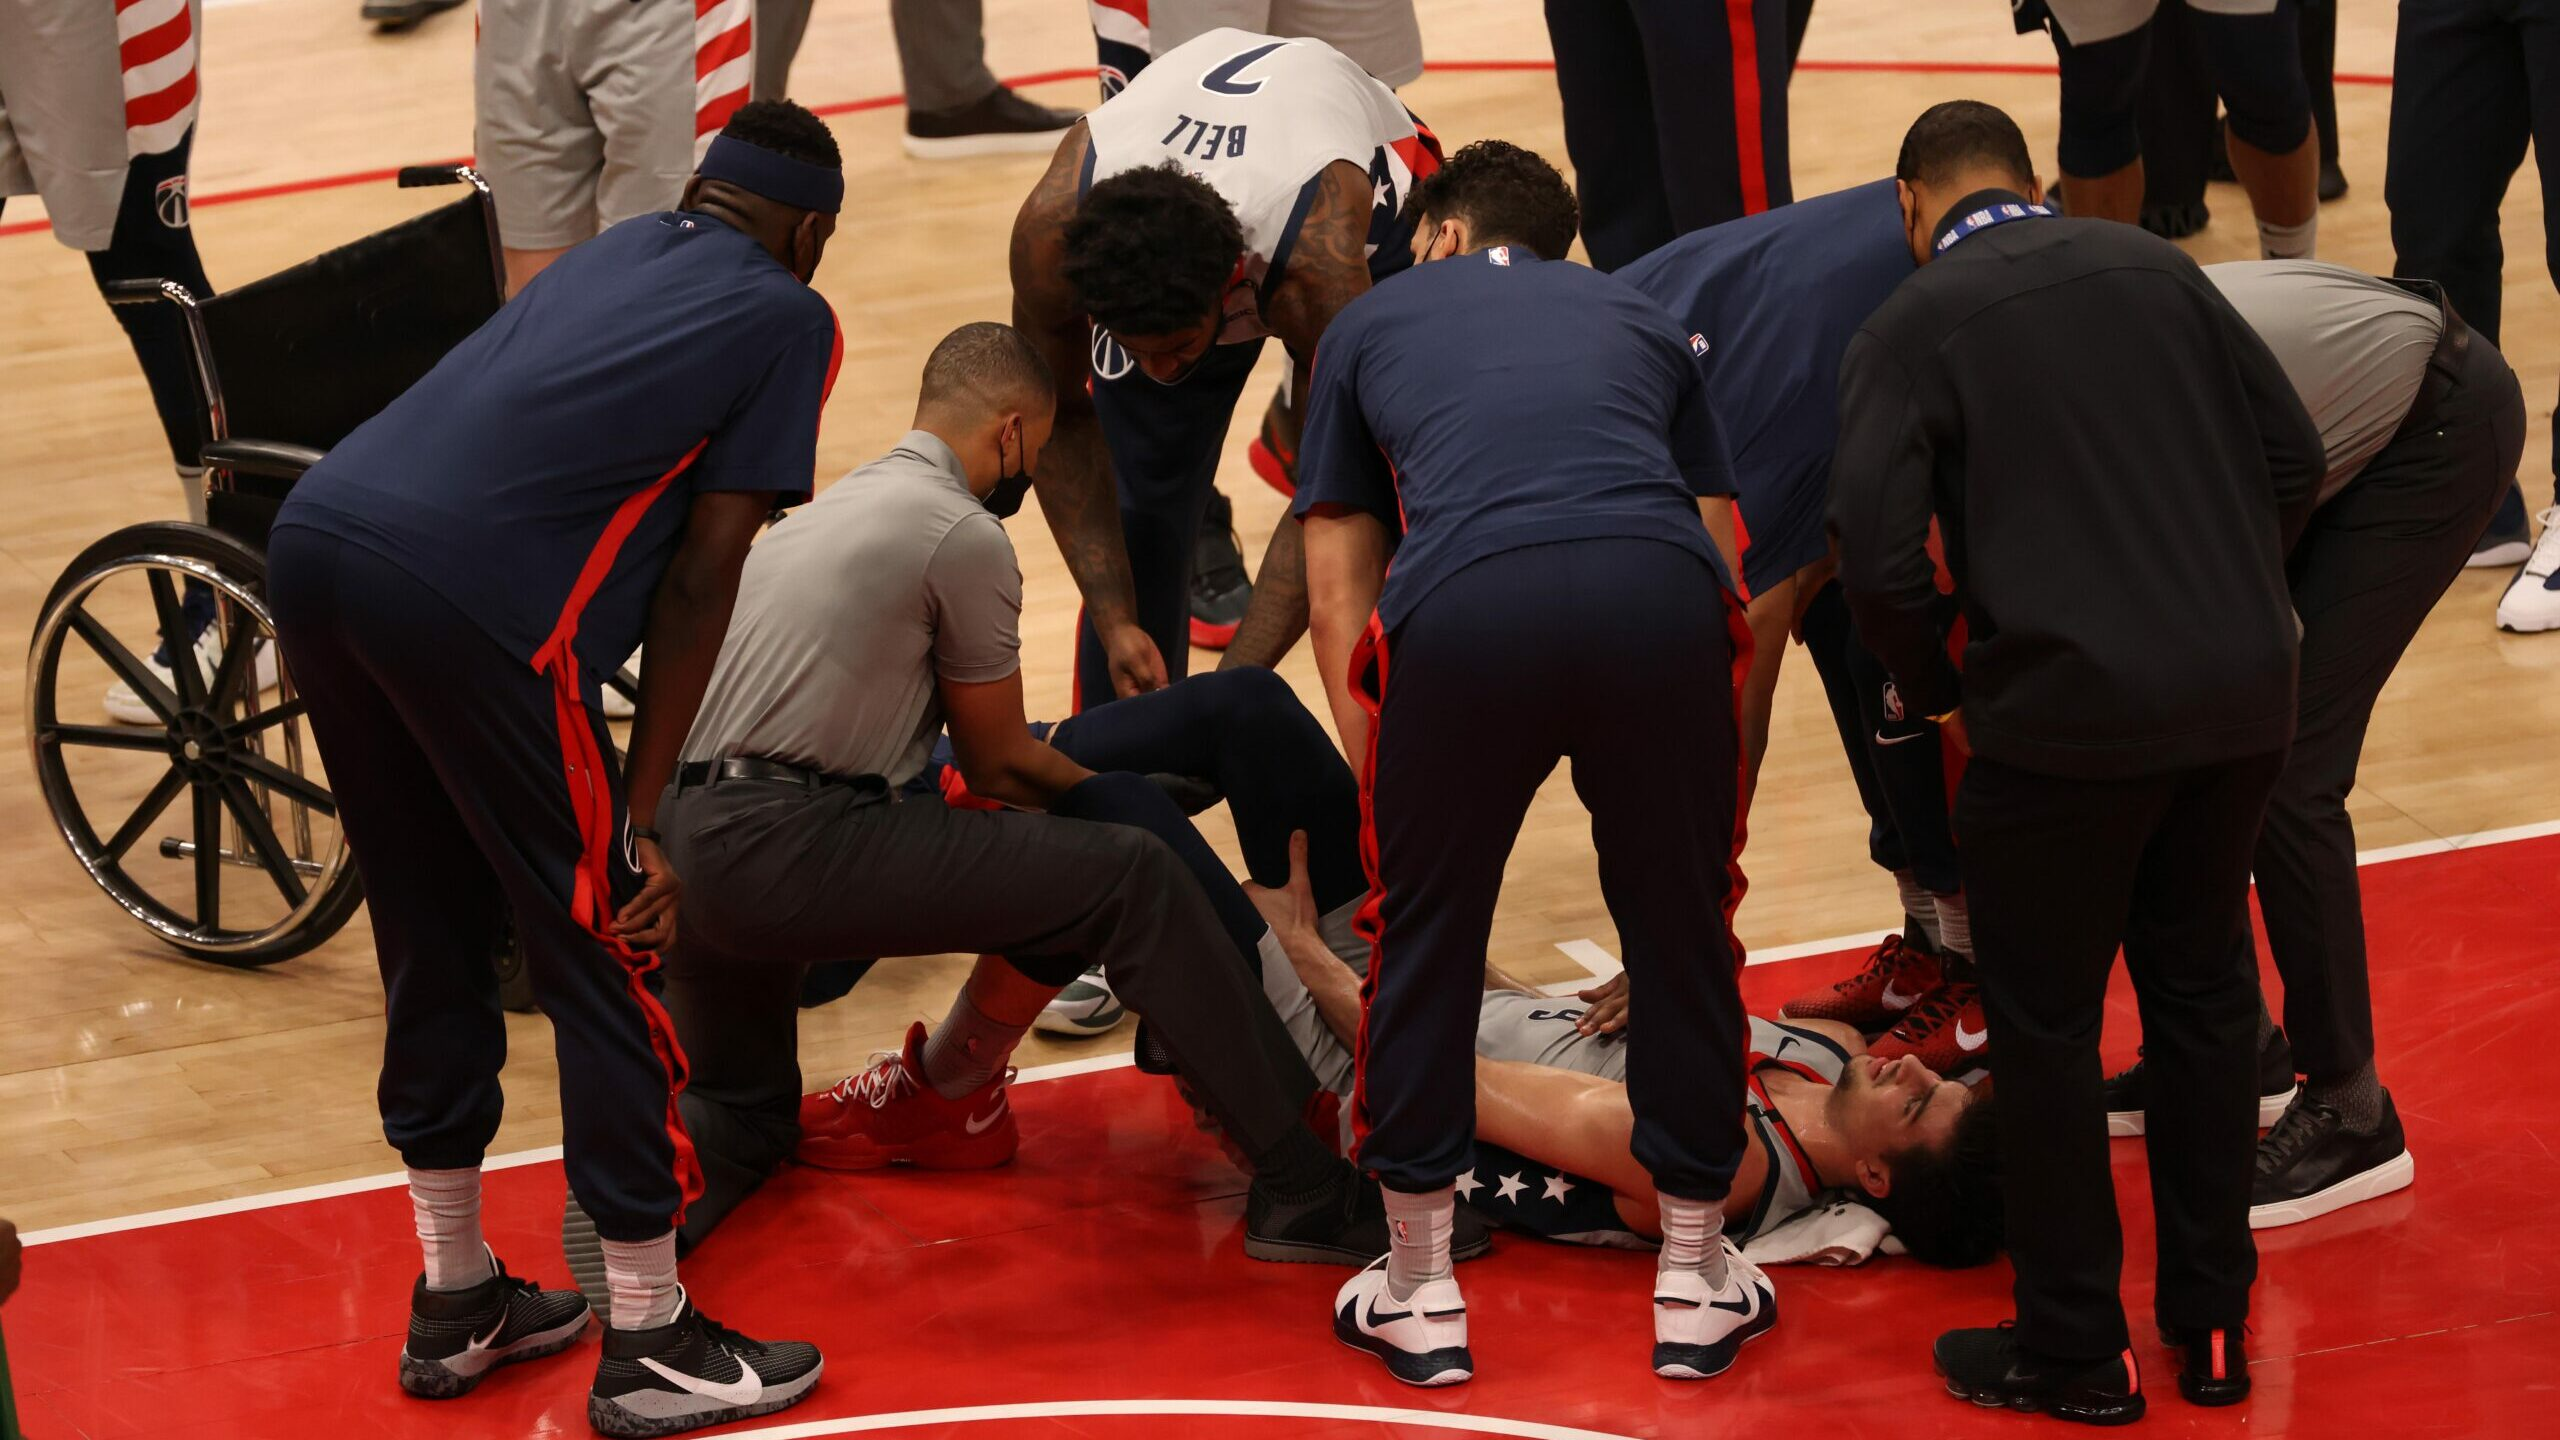 Wizards rookie Deni Avdija wheeled off court with leg injury